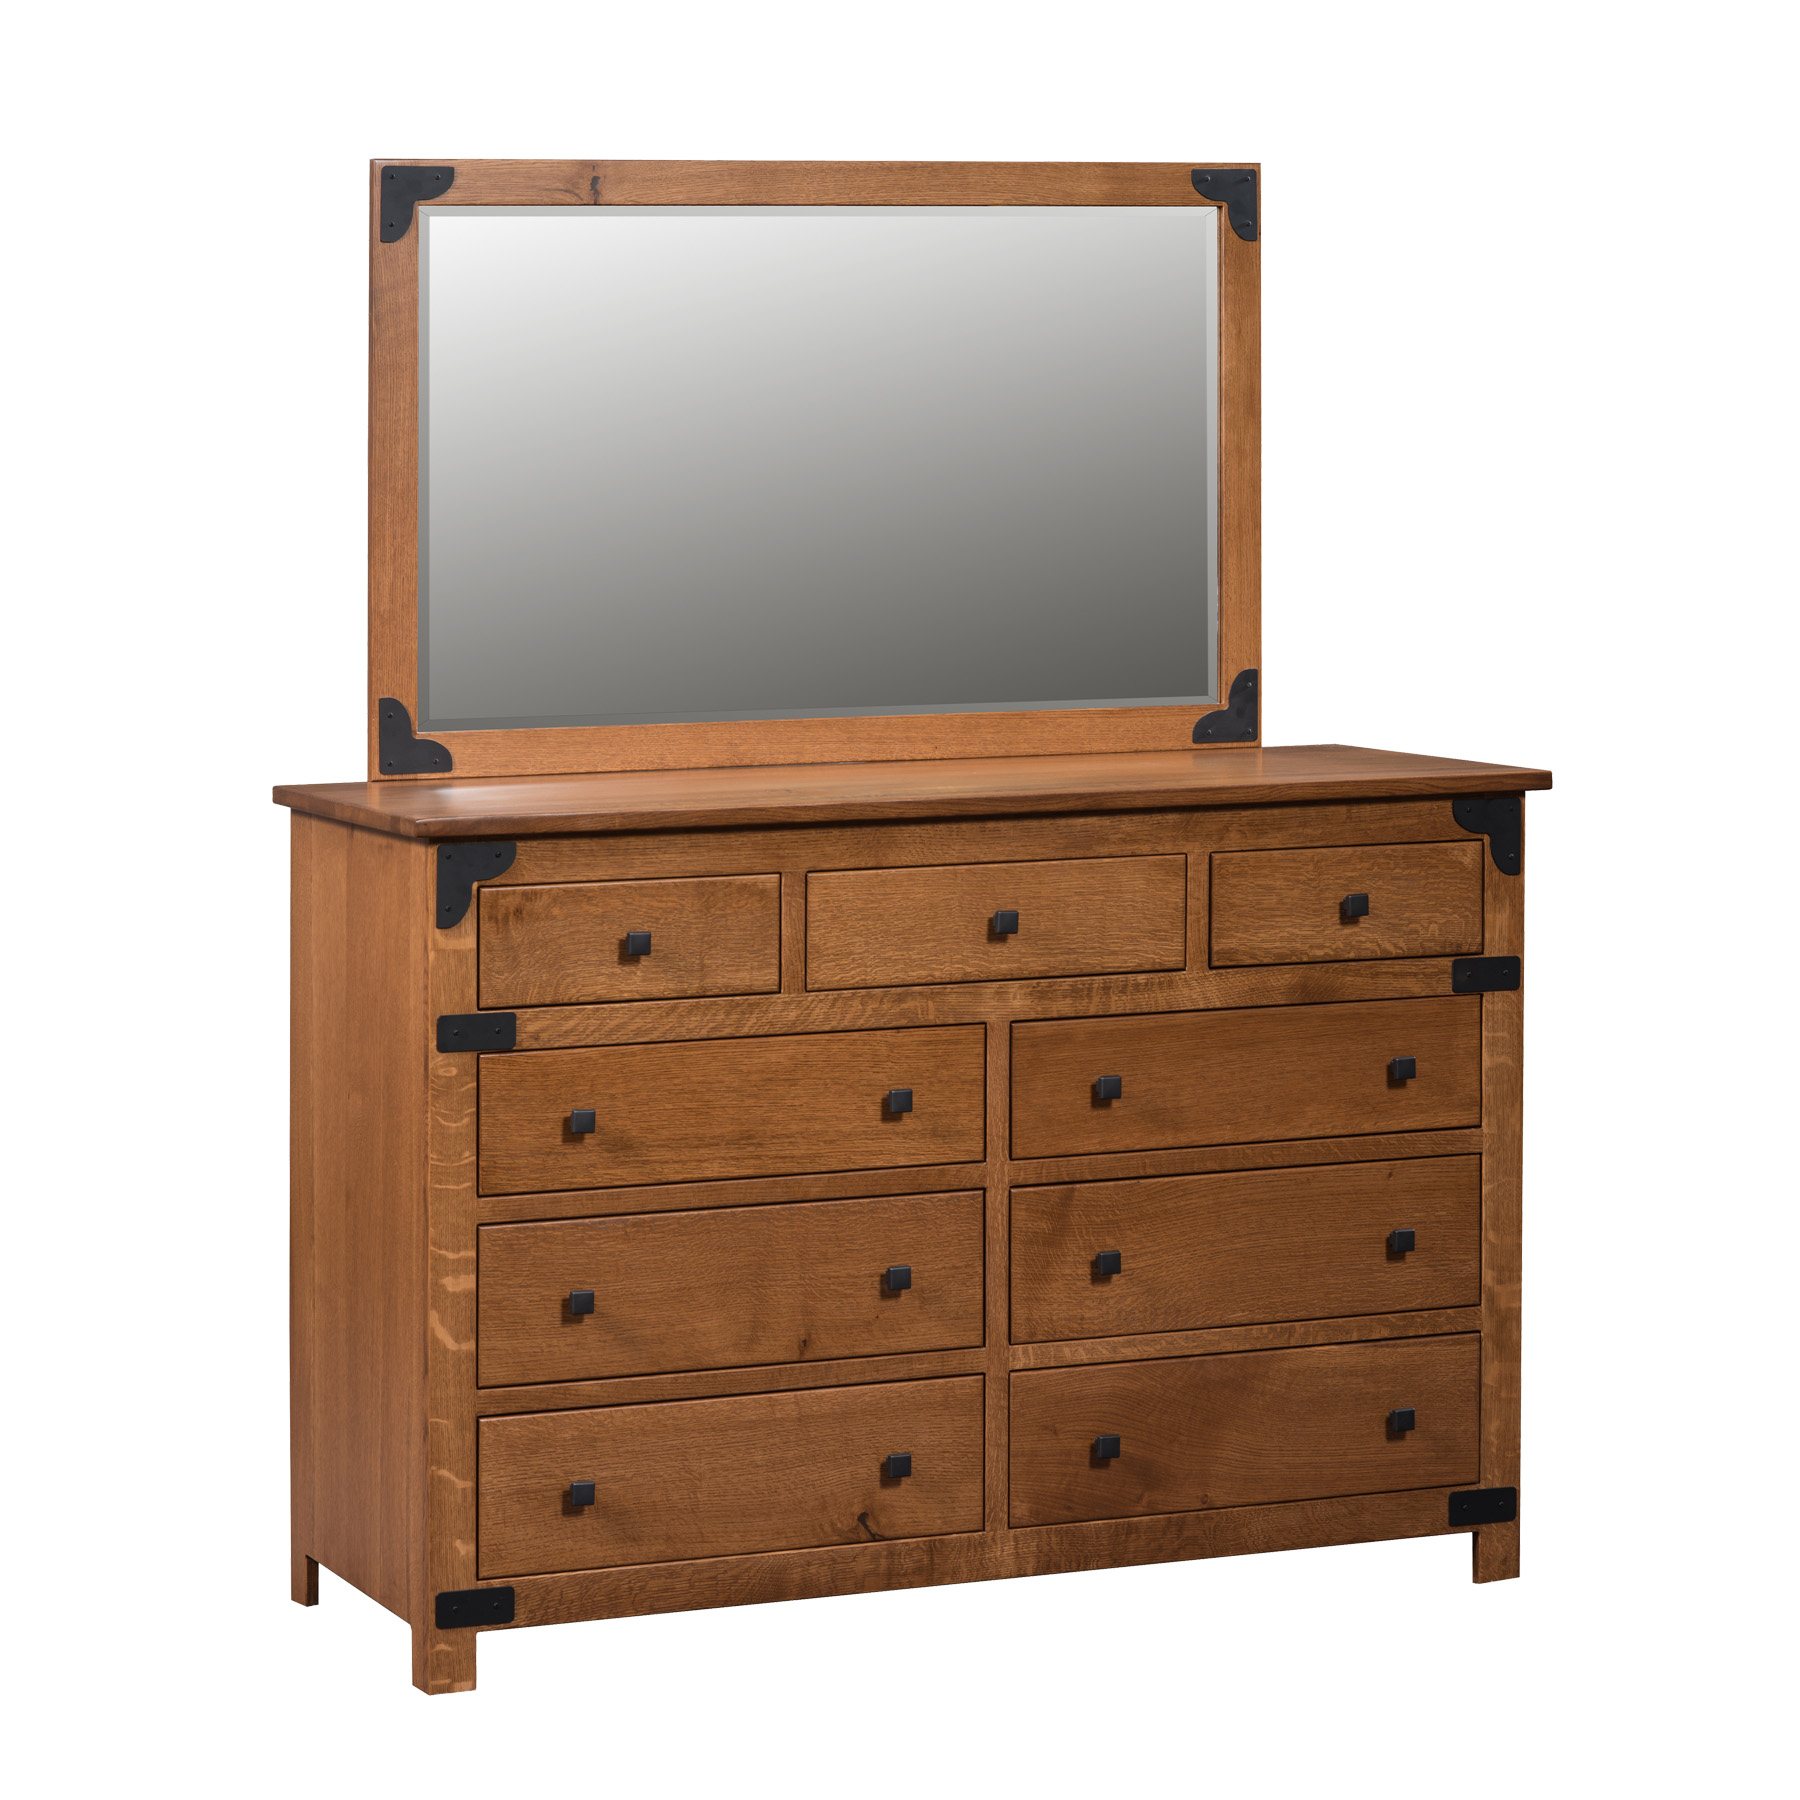 Prentiss Double Mule Dresser and Mirror.